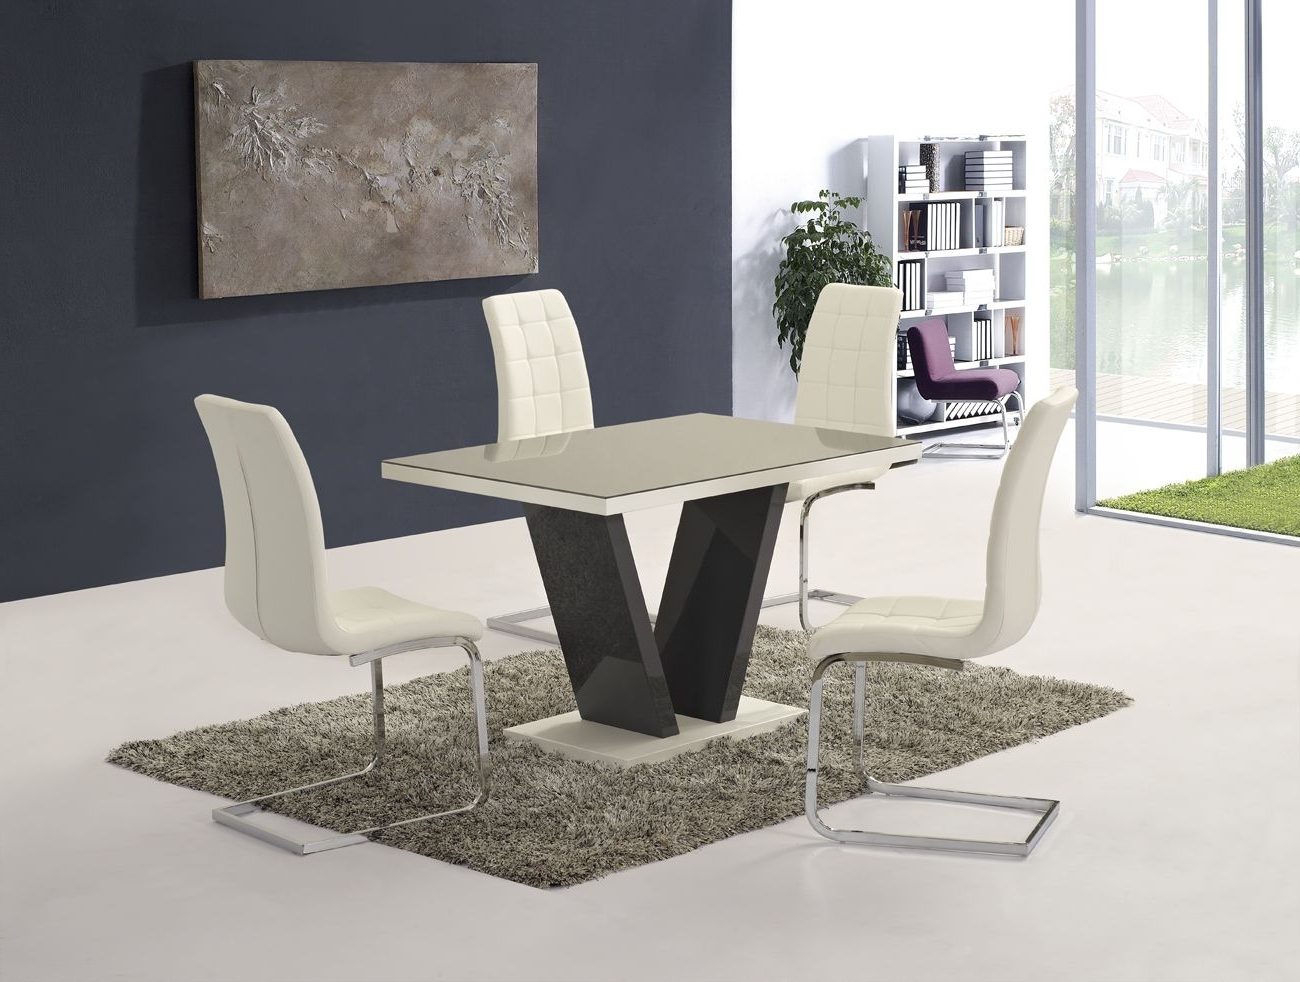 Latest Ga Vico High Gloss Grey Glass Top Designer 120 Cm Dining Set & 4 For High Gloss Cream Dining Tables (View 19 of 25)